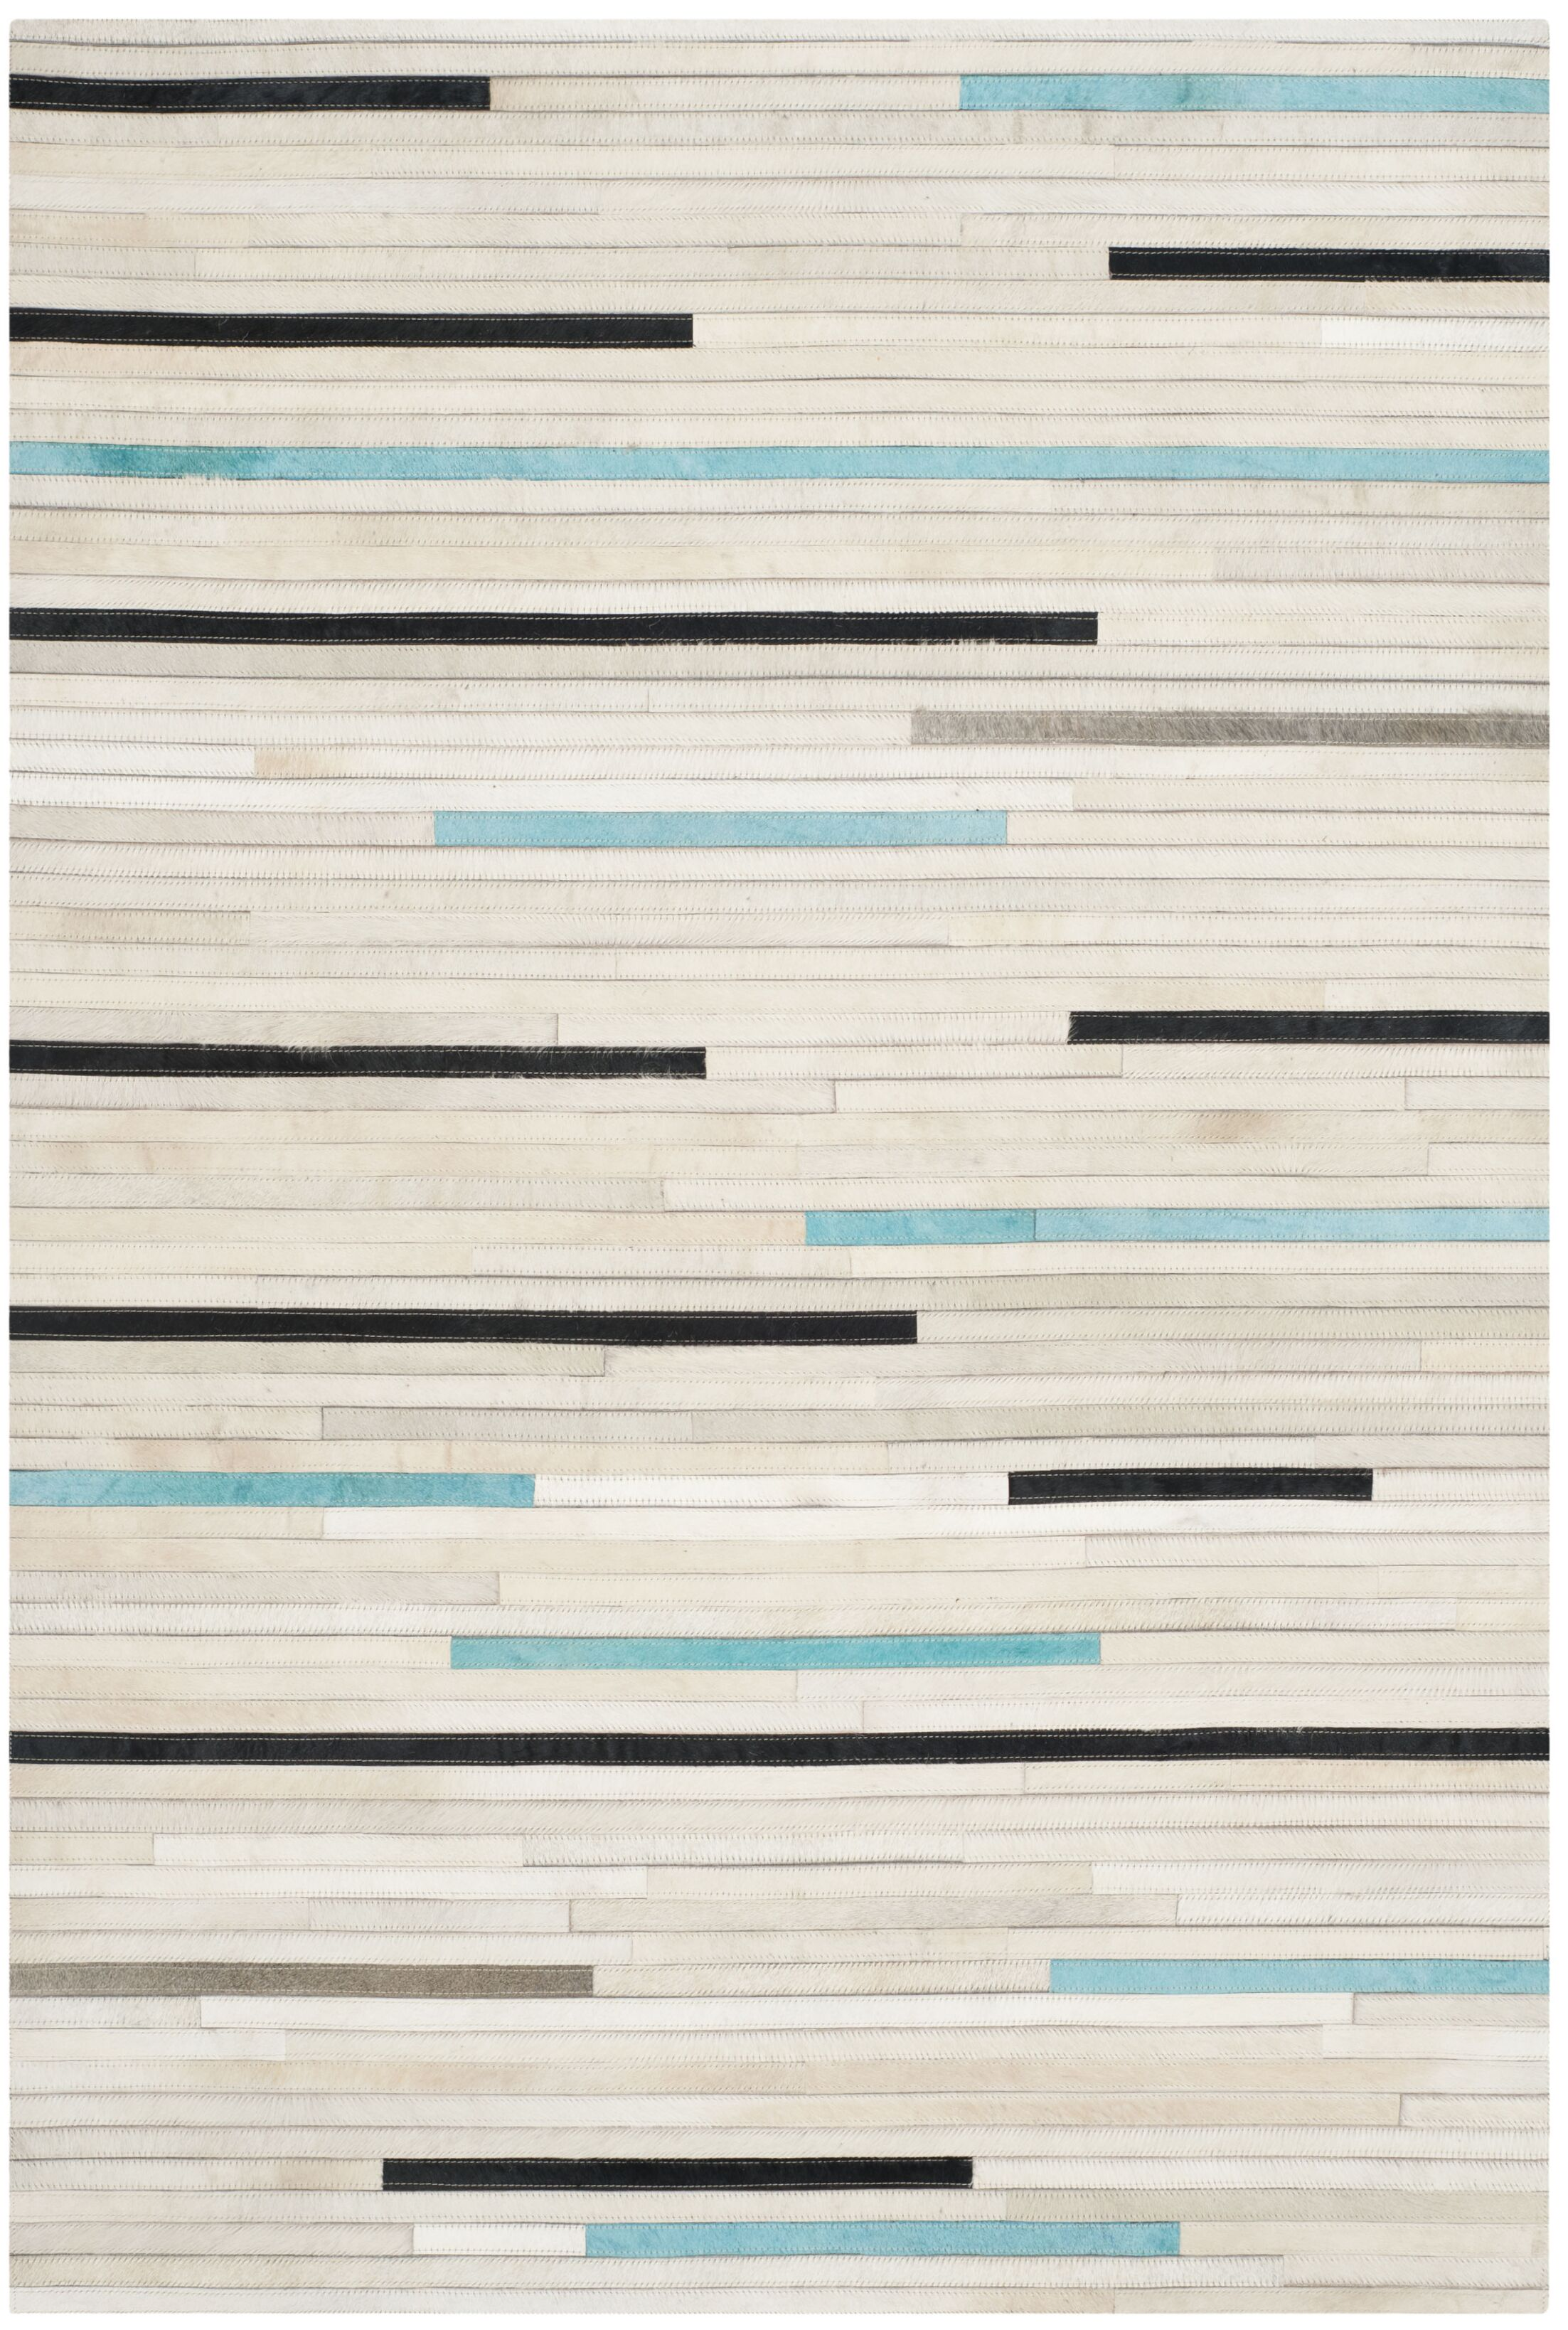 Stasia Leather Multi Contemporary Area Rug Rug Size: Rectangle 4' x 6'